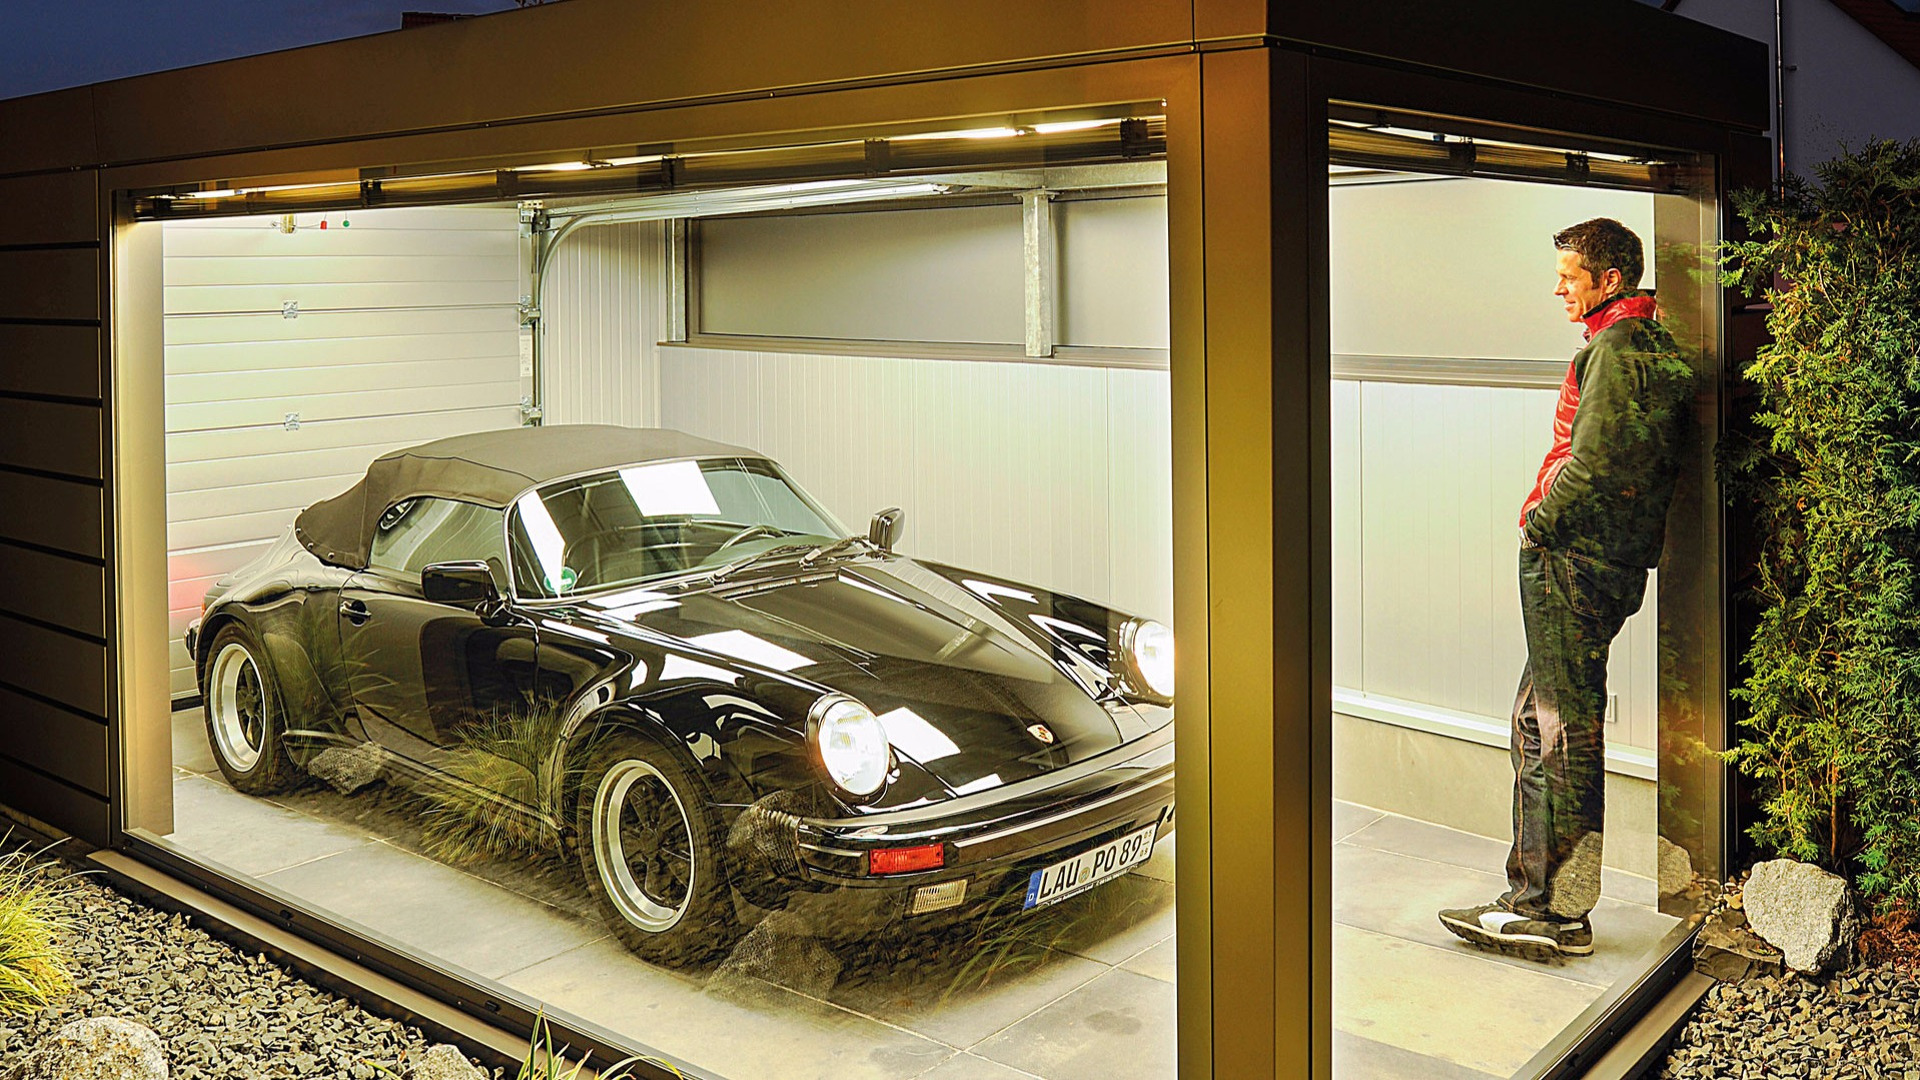 Porsche 911 owner builds bonkers garage for all the right reasons